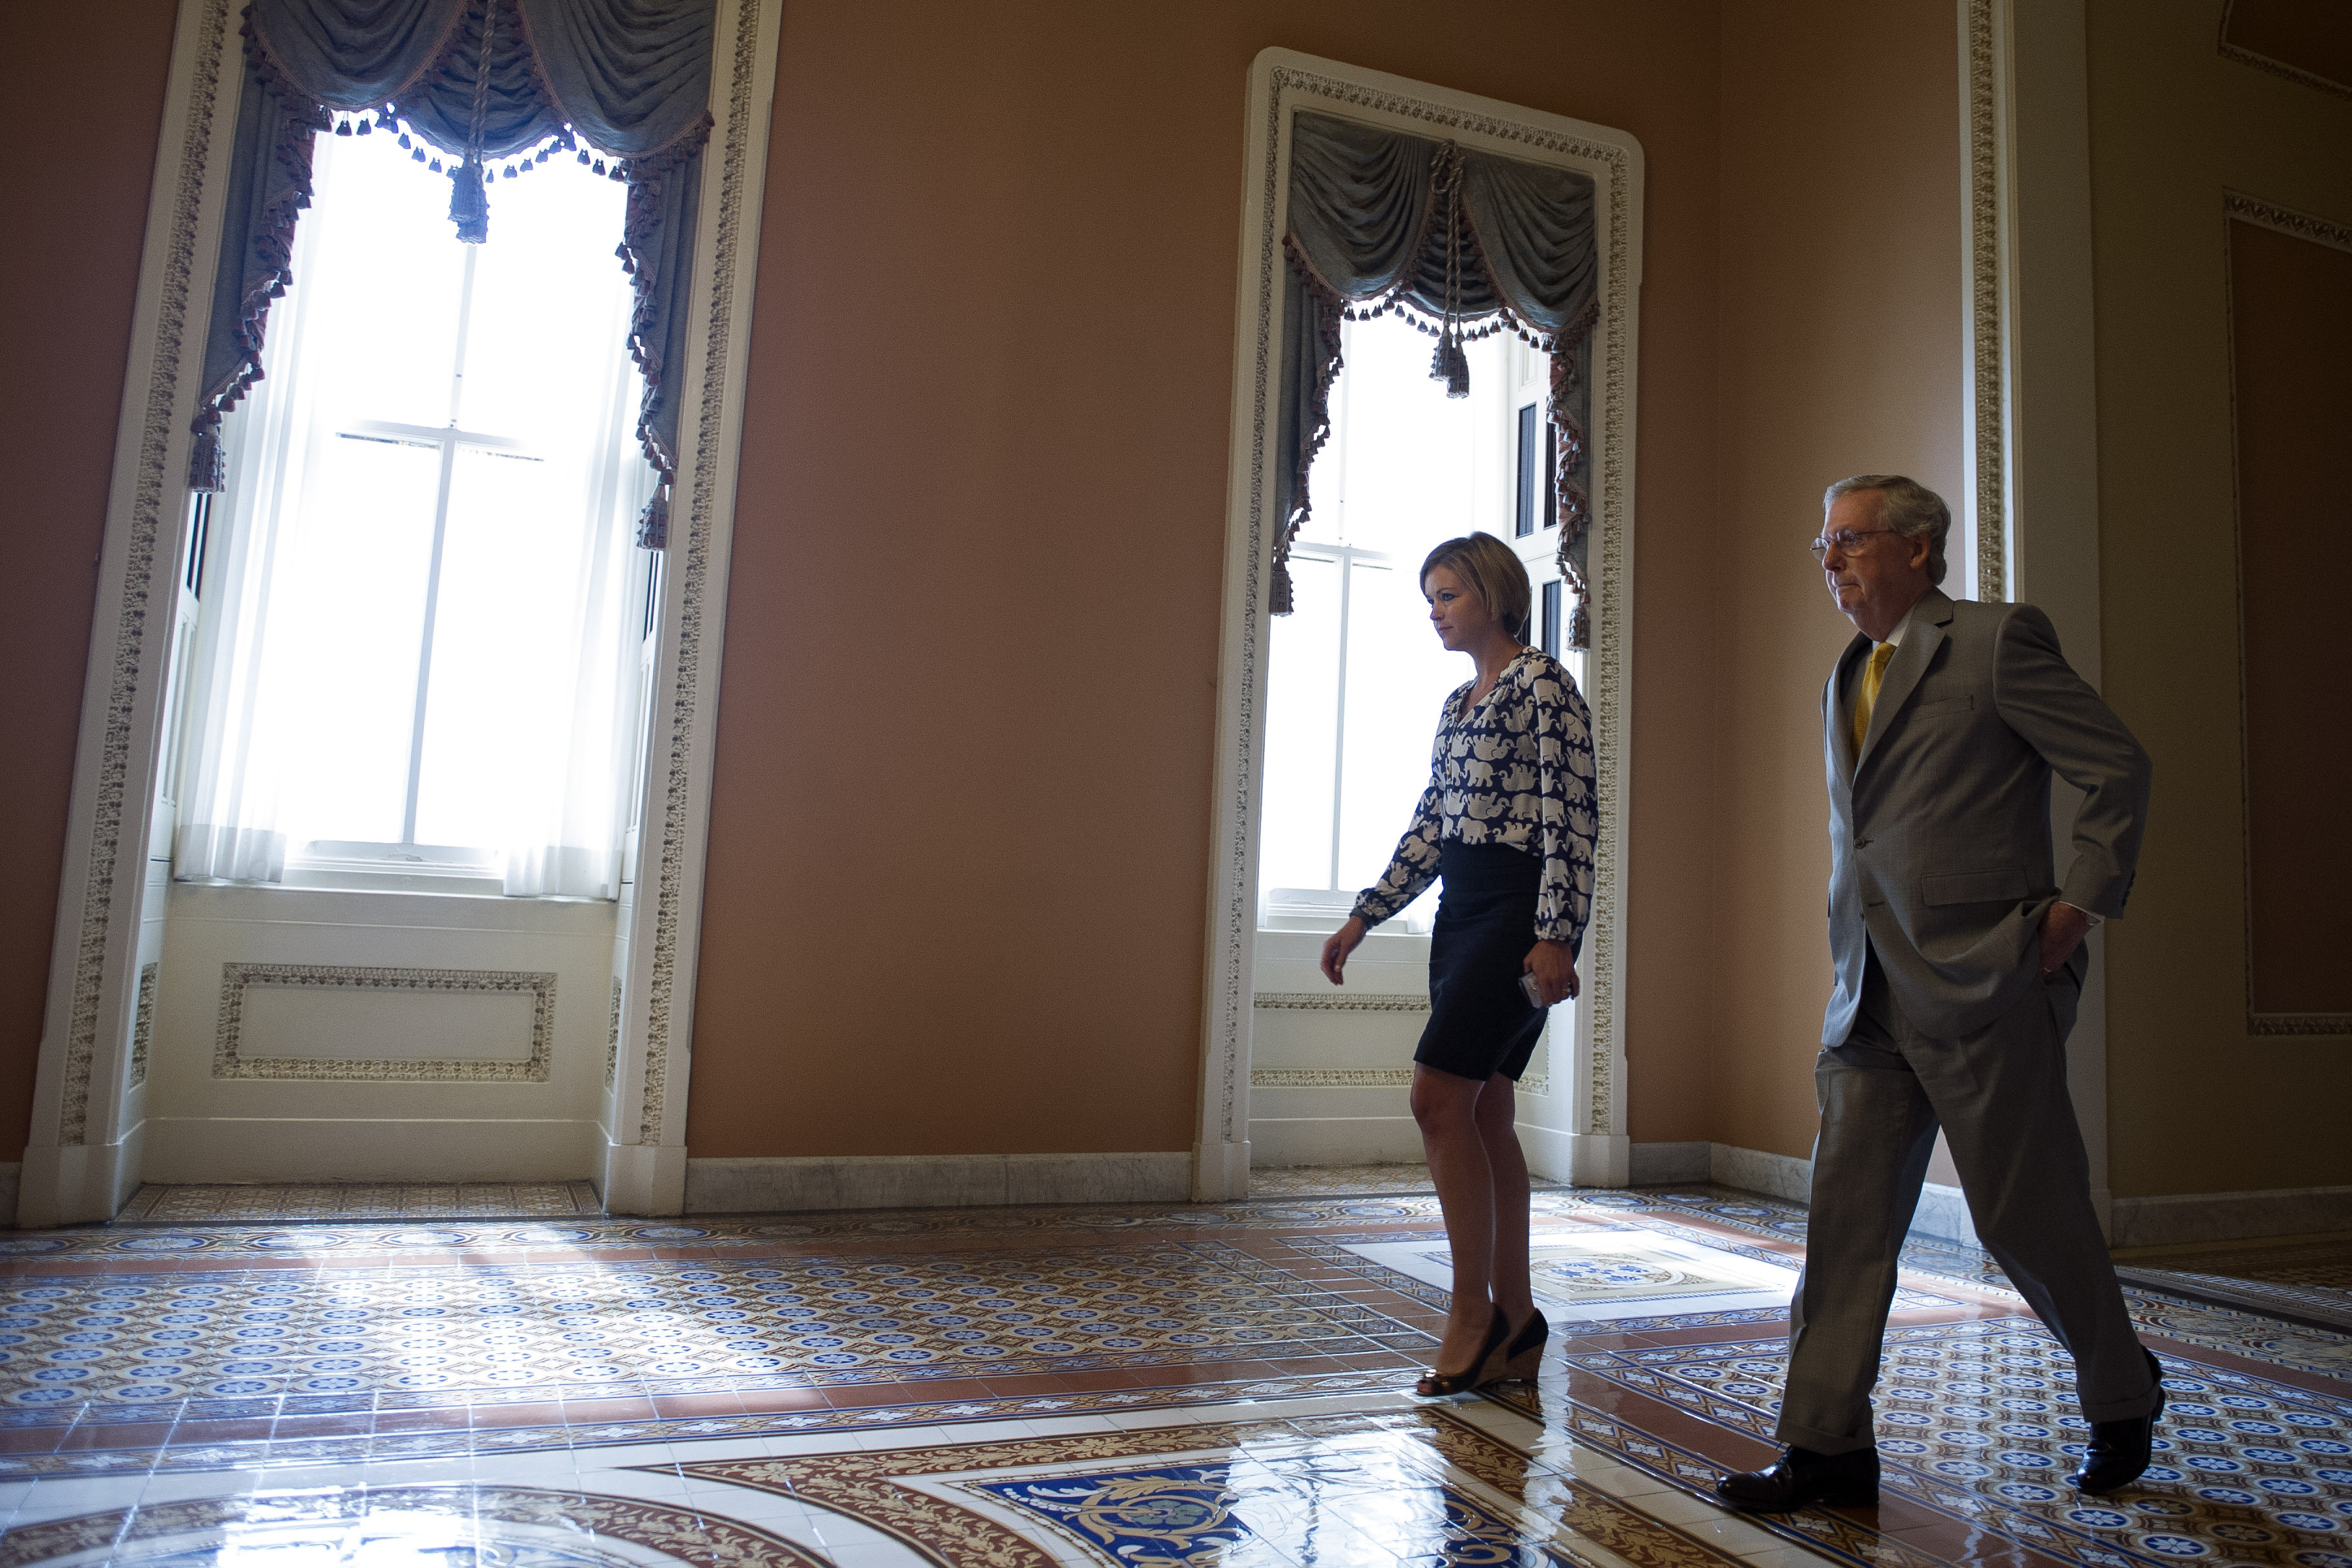 Senate Majority Leader Mitch McConnell, R-Ky., walks from the Senate Chamber after opening a special session to extend surveillance programs in Washington, on Sunday. Cliff Owen/AP